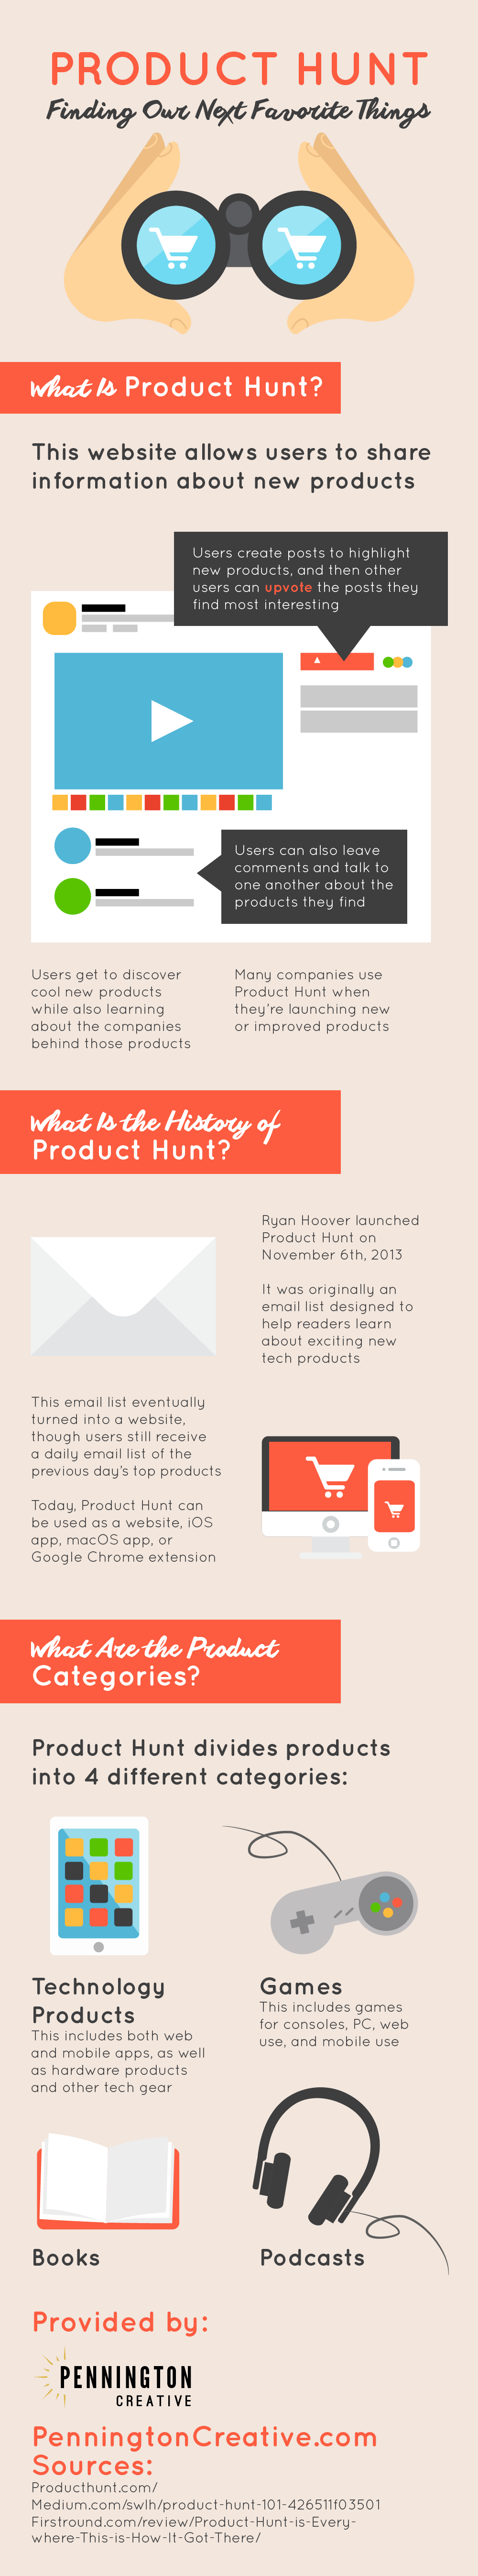 Infographic about Product Hunt website.